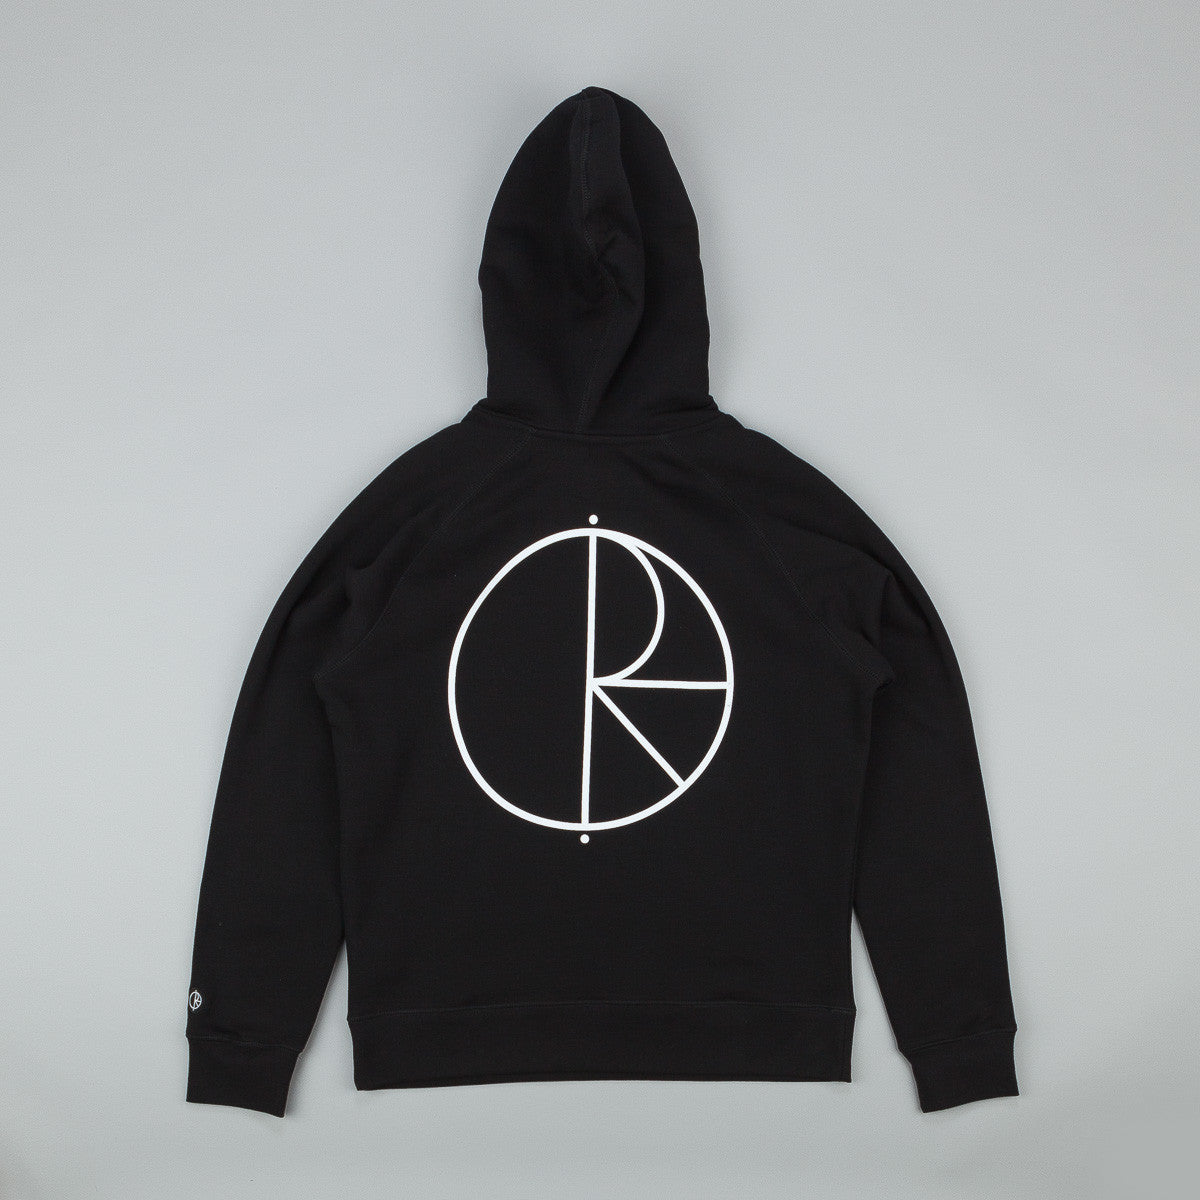 Polar Stroke Logo Hooded Sweatshirt - Black / White